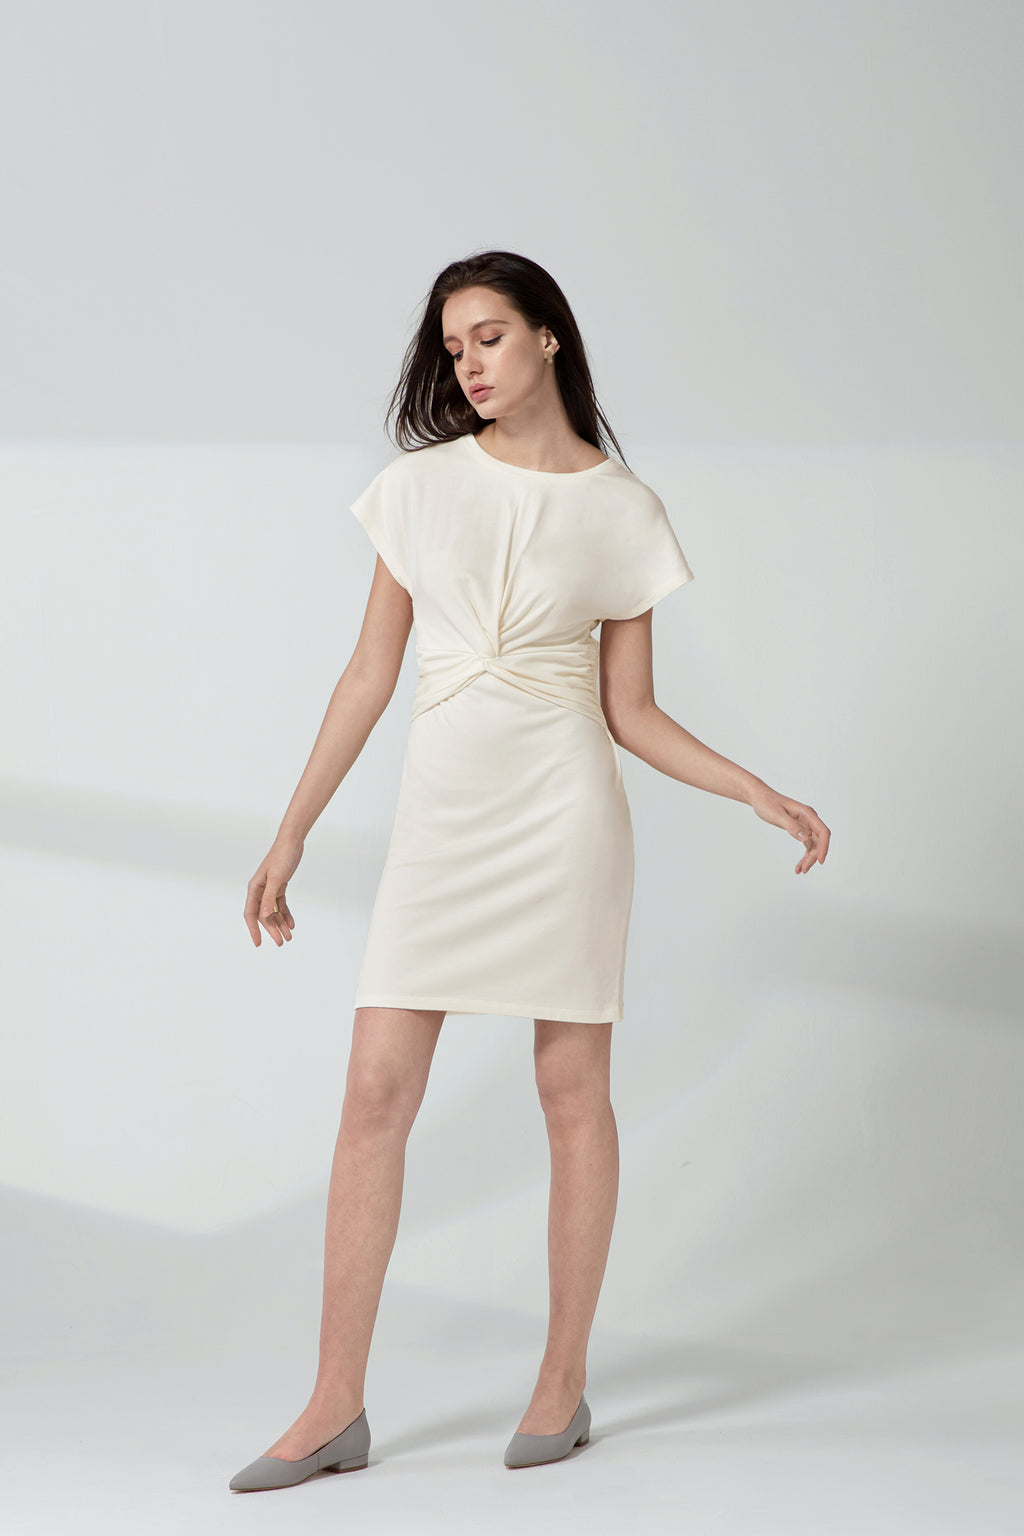 Knotted Dress - Vanilla Terry